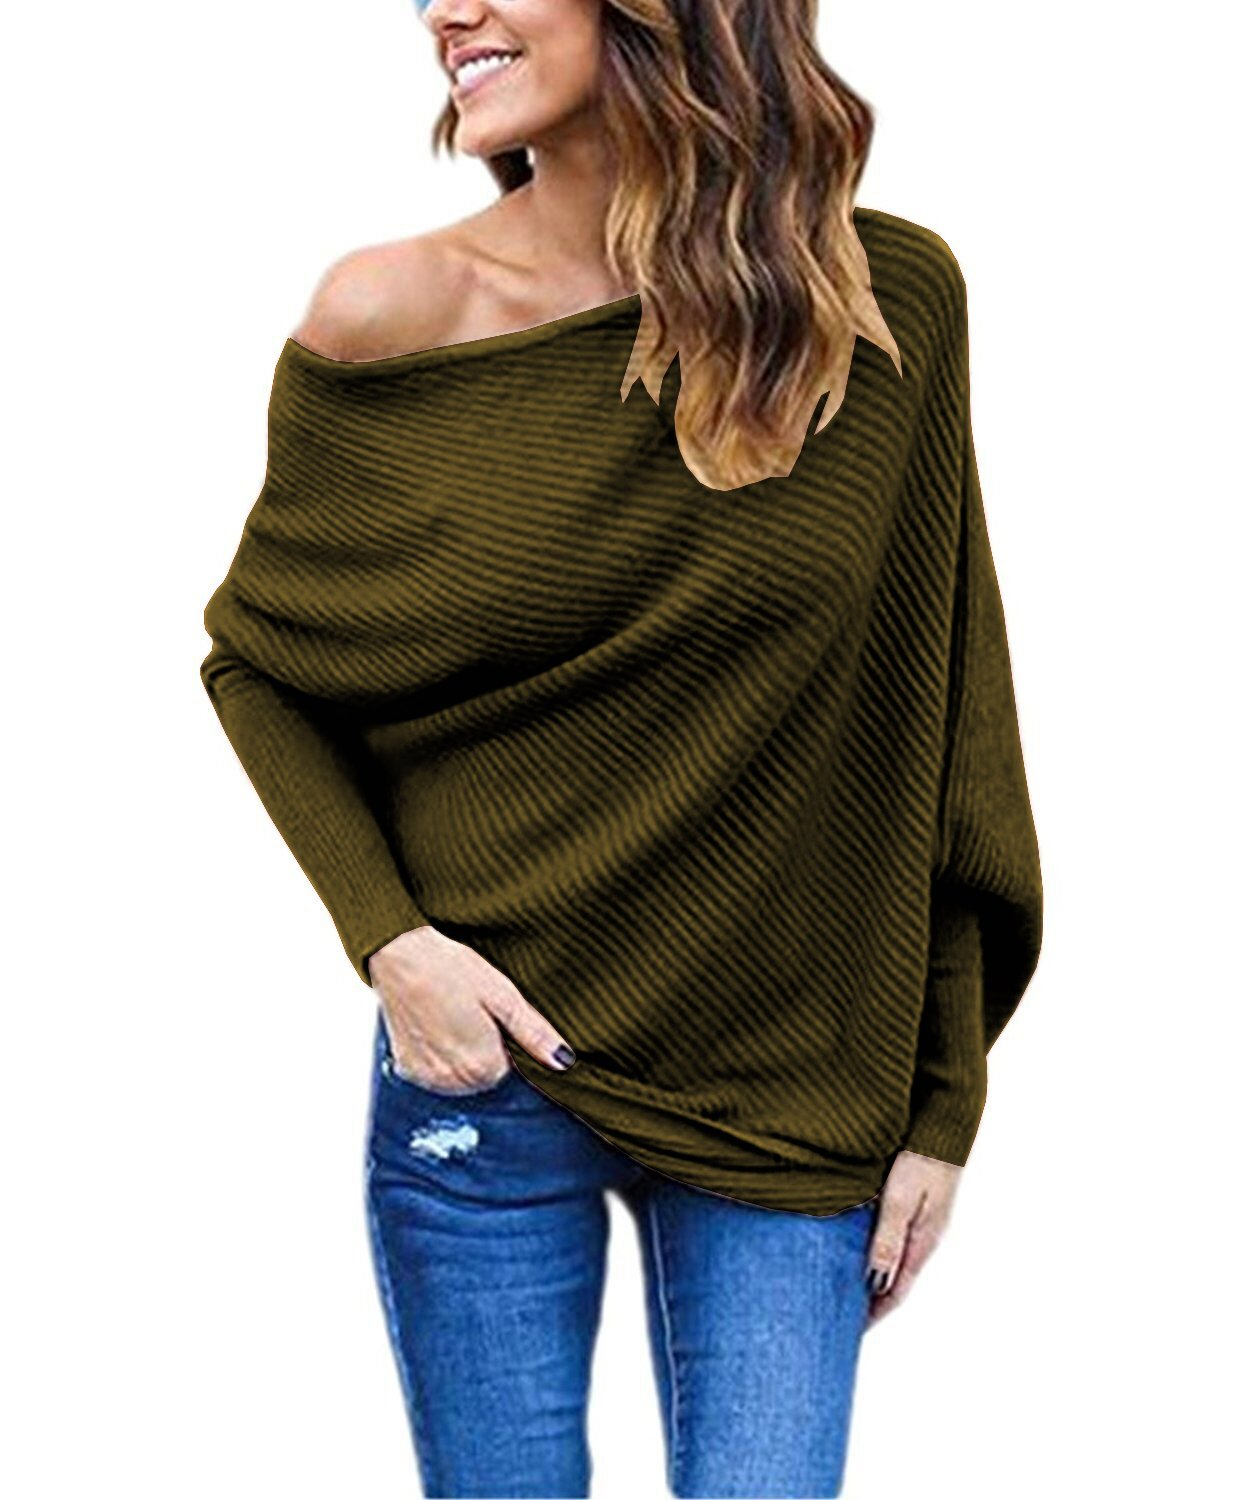 Womens Off The Shoulder Tops Long Batwing Sleeve Loose Ribbed Sweater Shirts